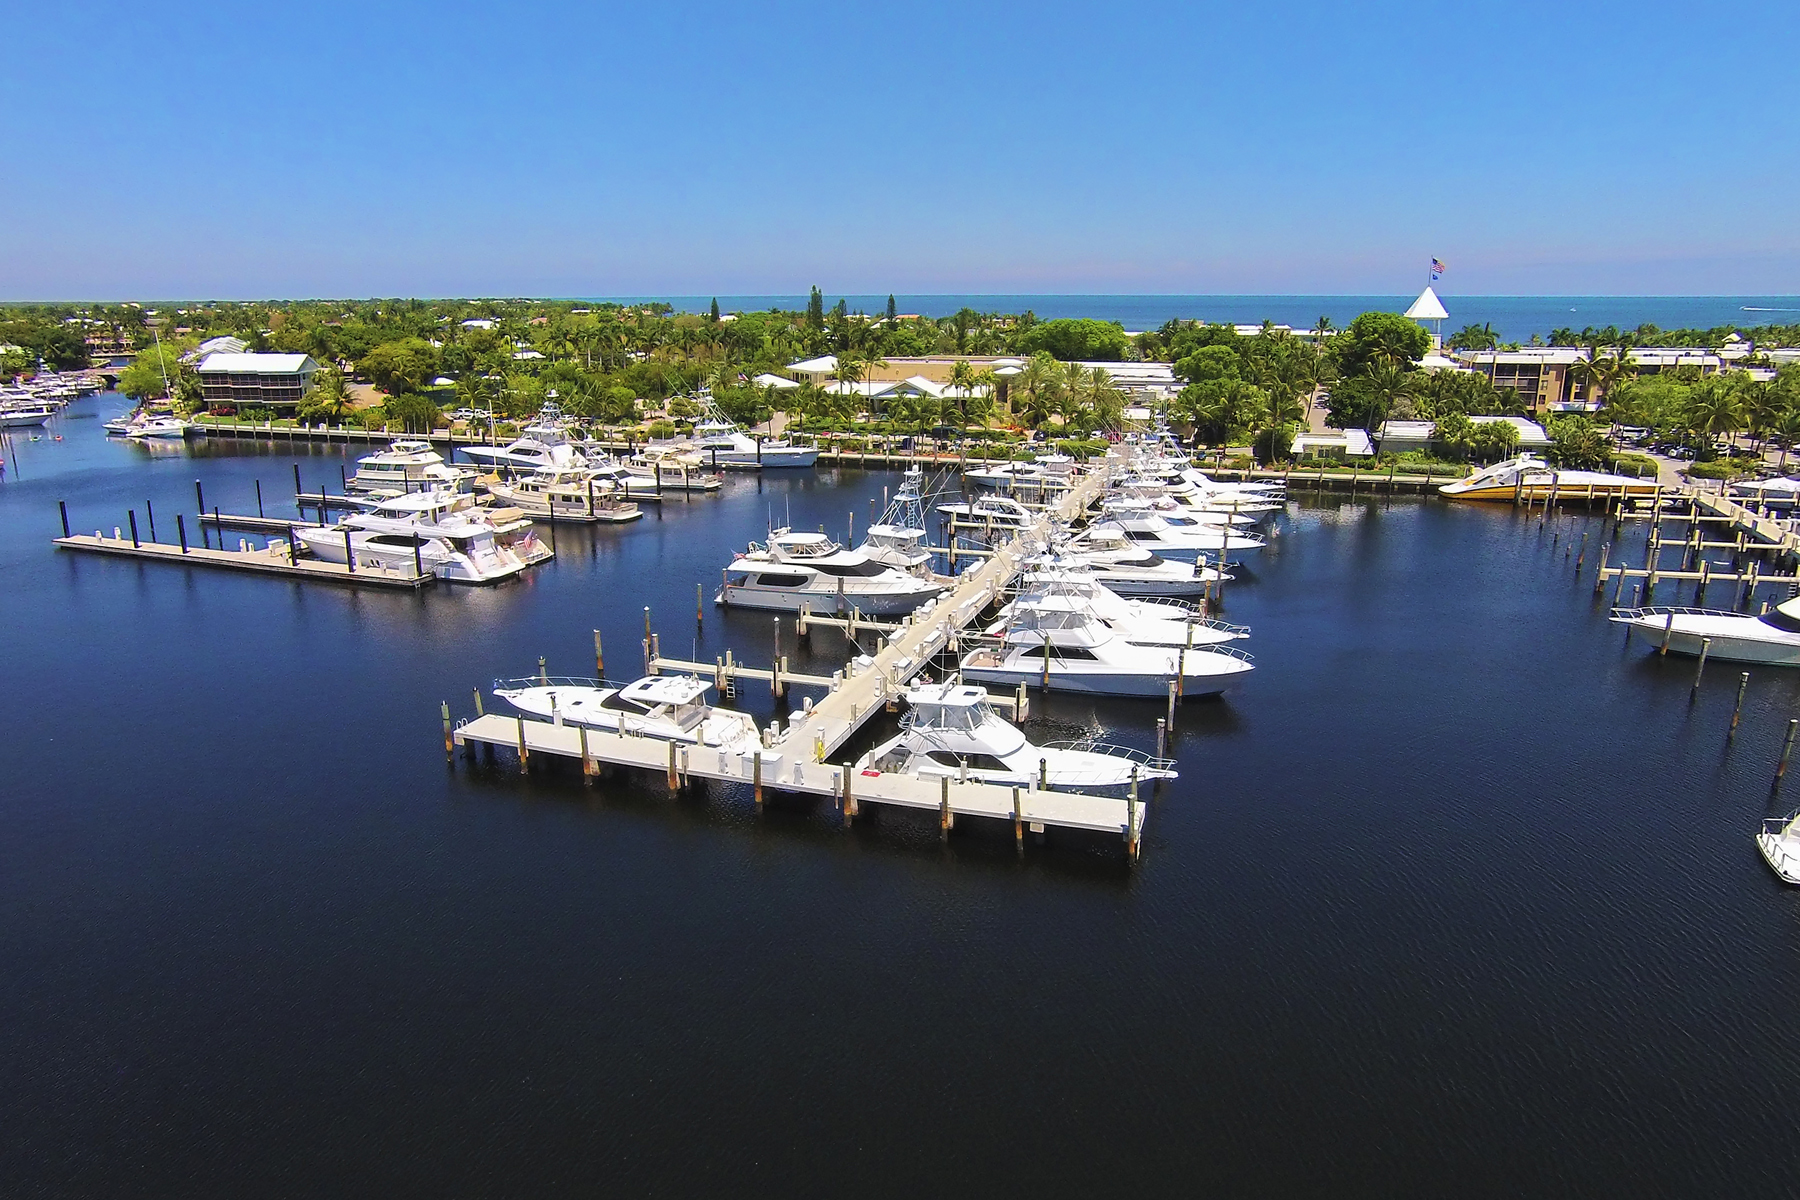 Additional photo for property listing at Ocean Reef Marina Offers Full Yacht Services 201 Ocean Reef Dr. FS-25 Key Largo, Florida 3303 Estados Unidos